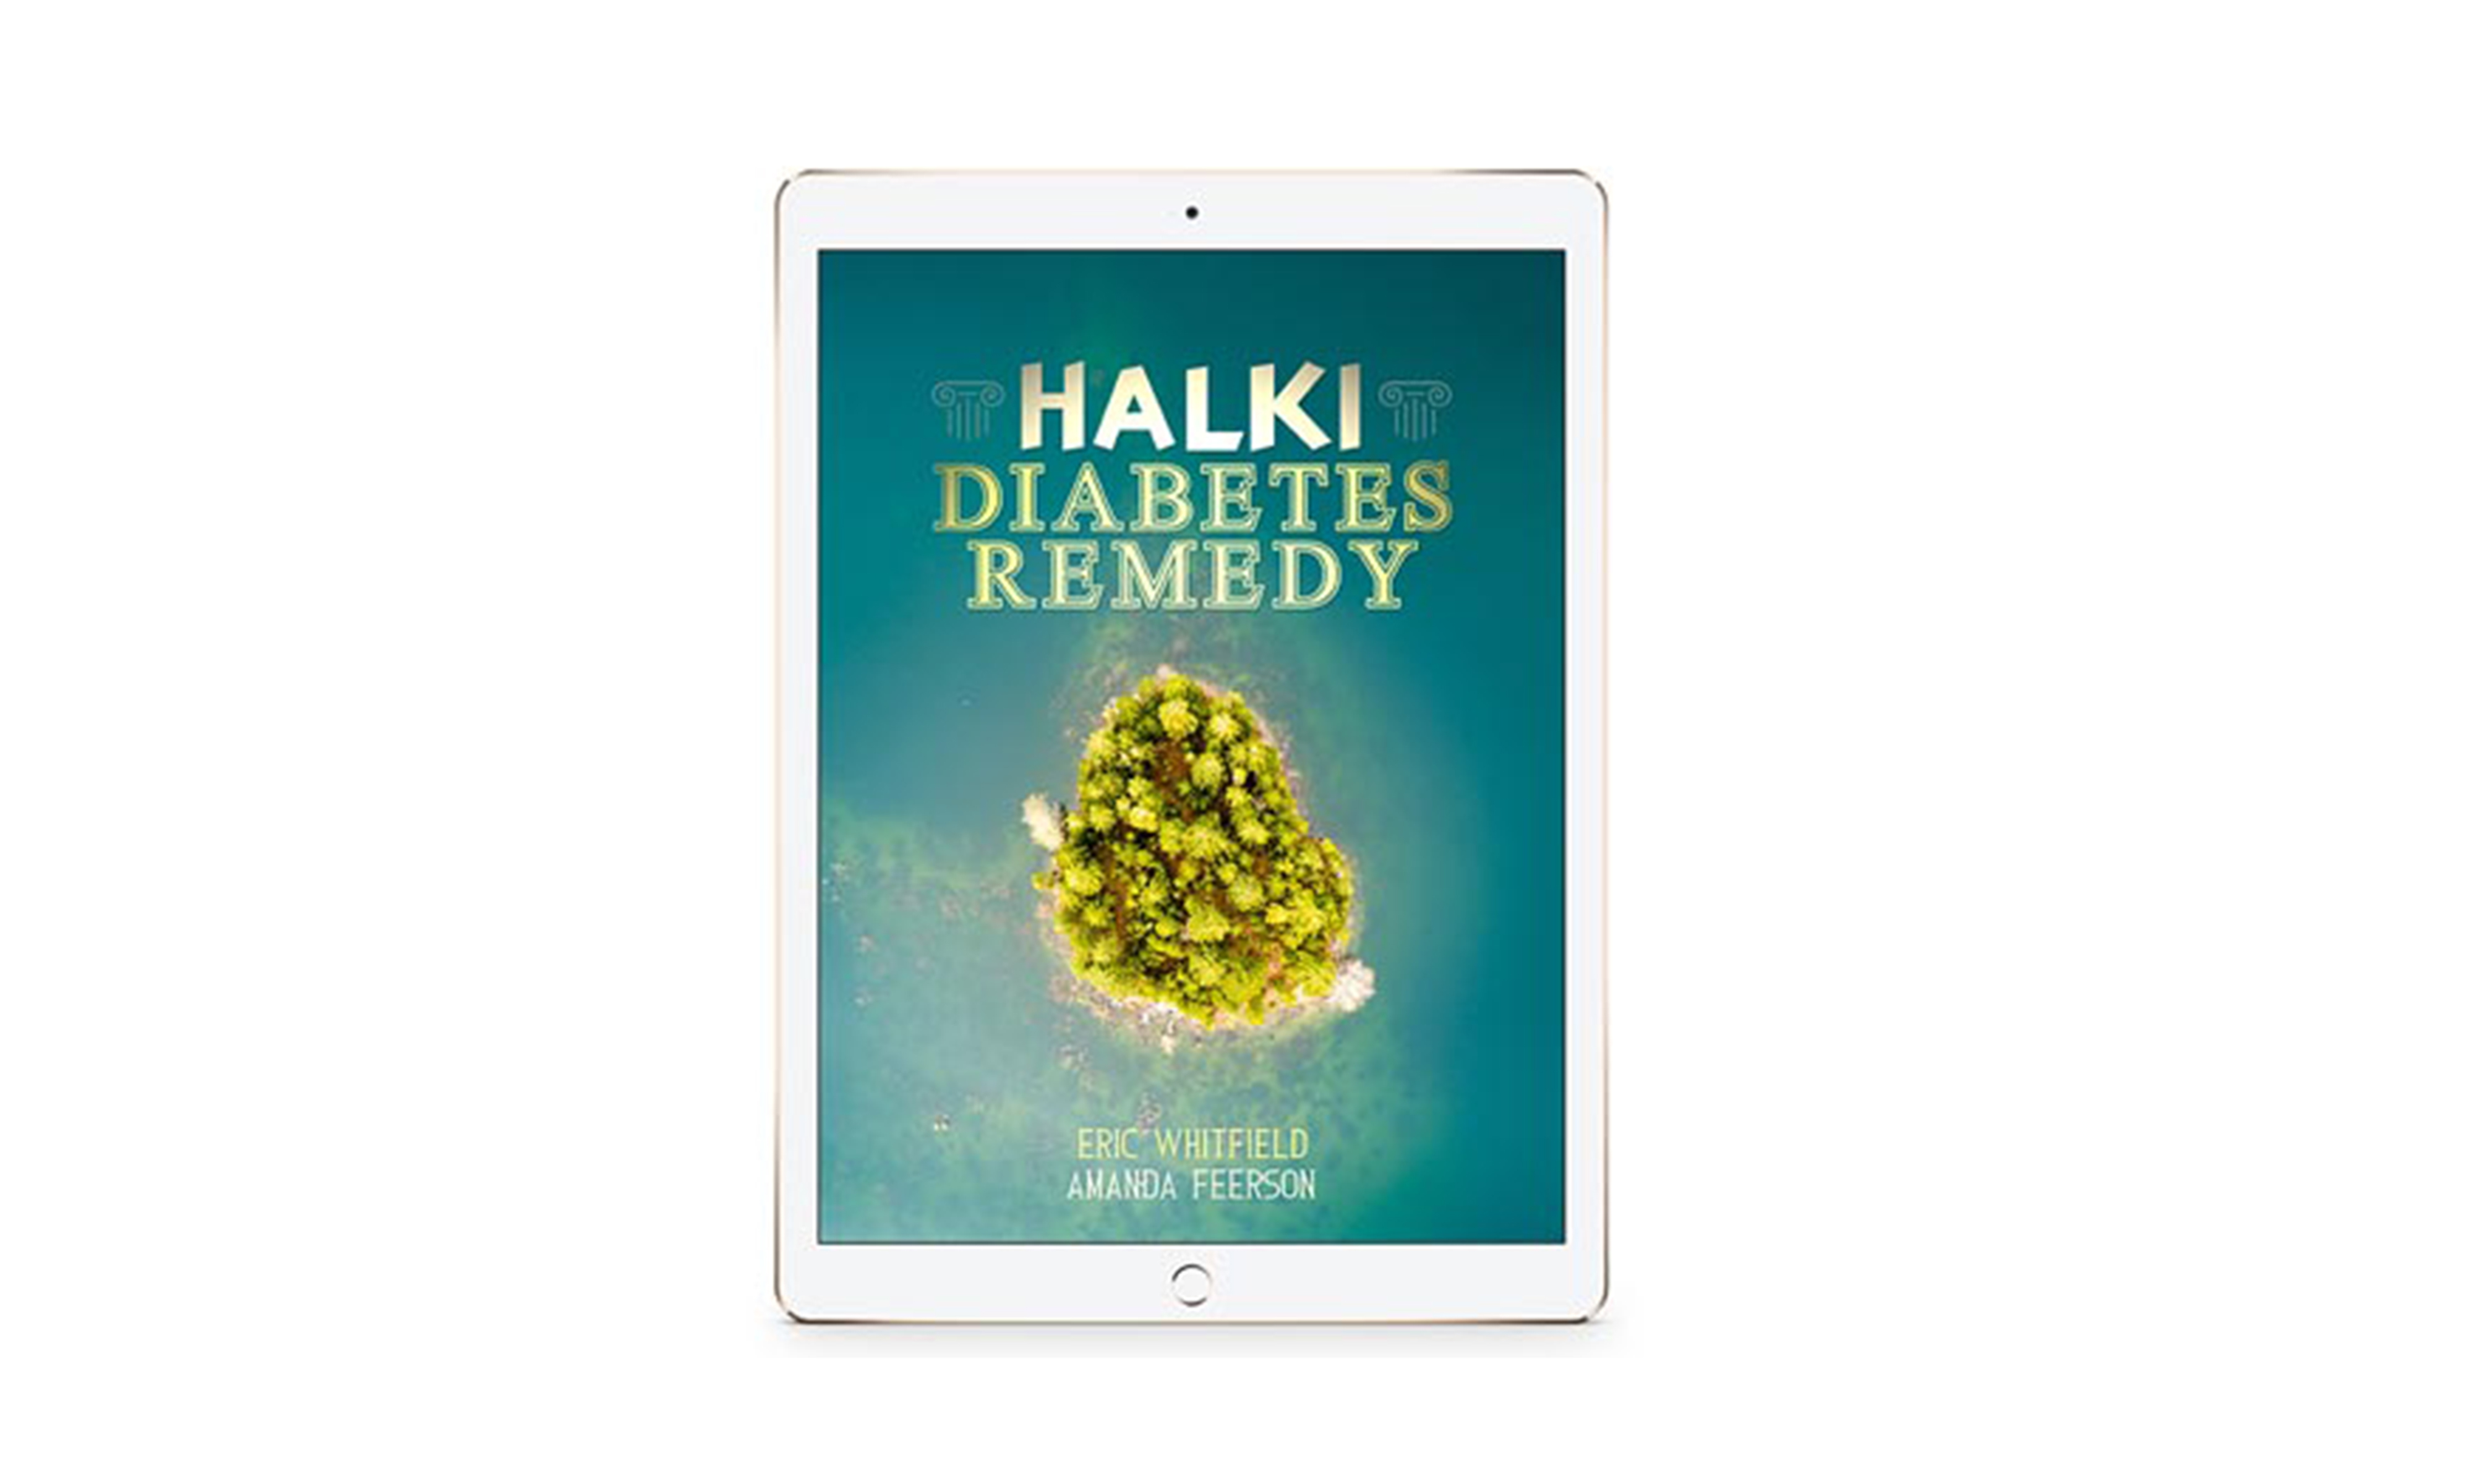 Cheap  Reserve Diabetes  Halki Diabetes  Ebay New